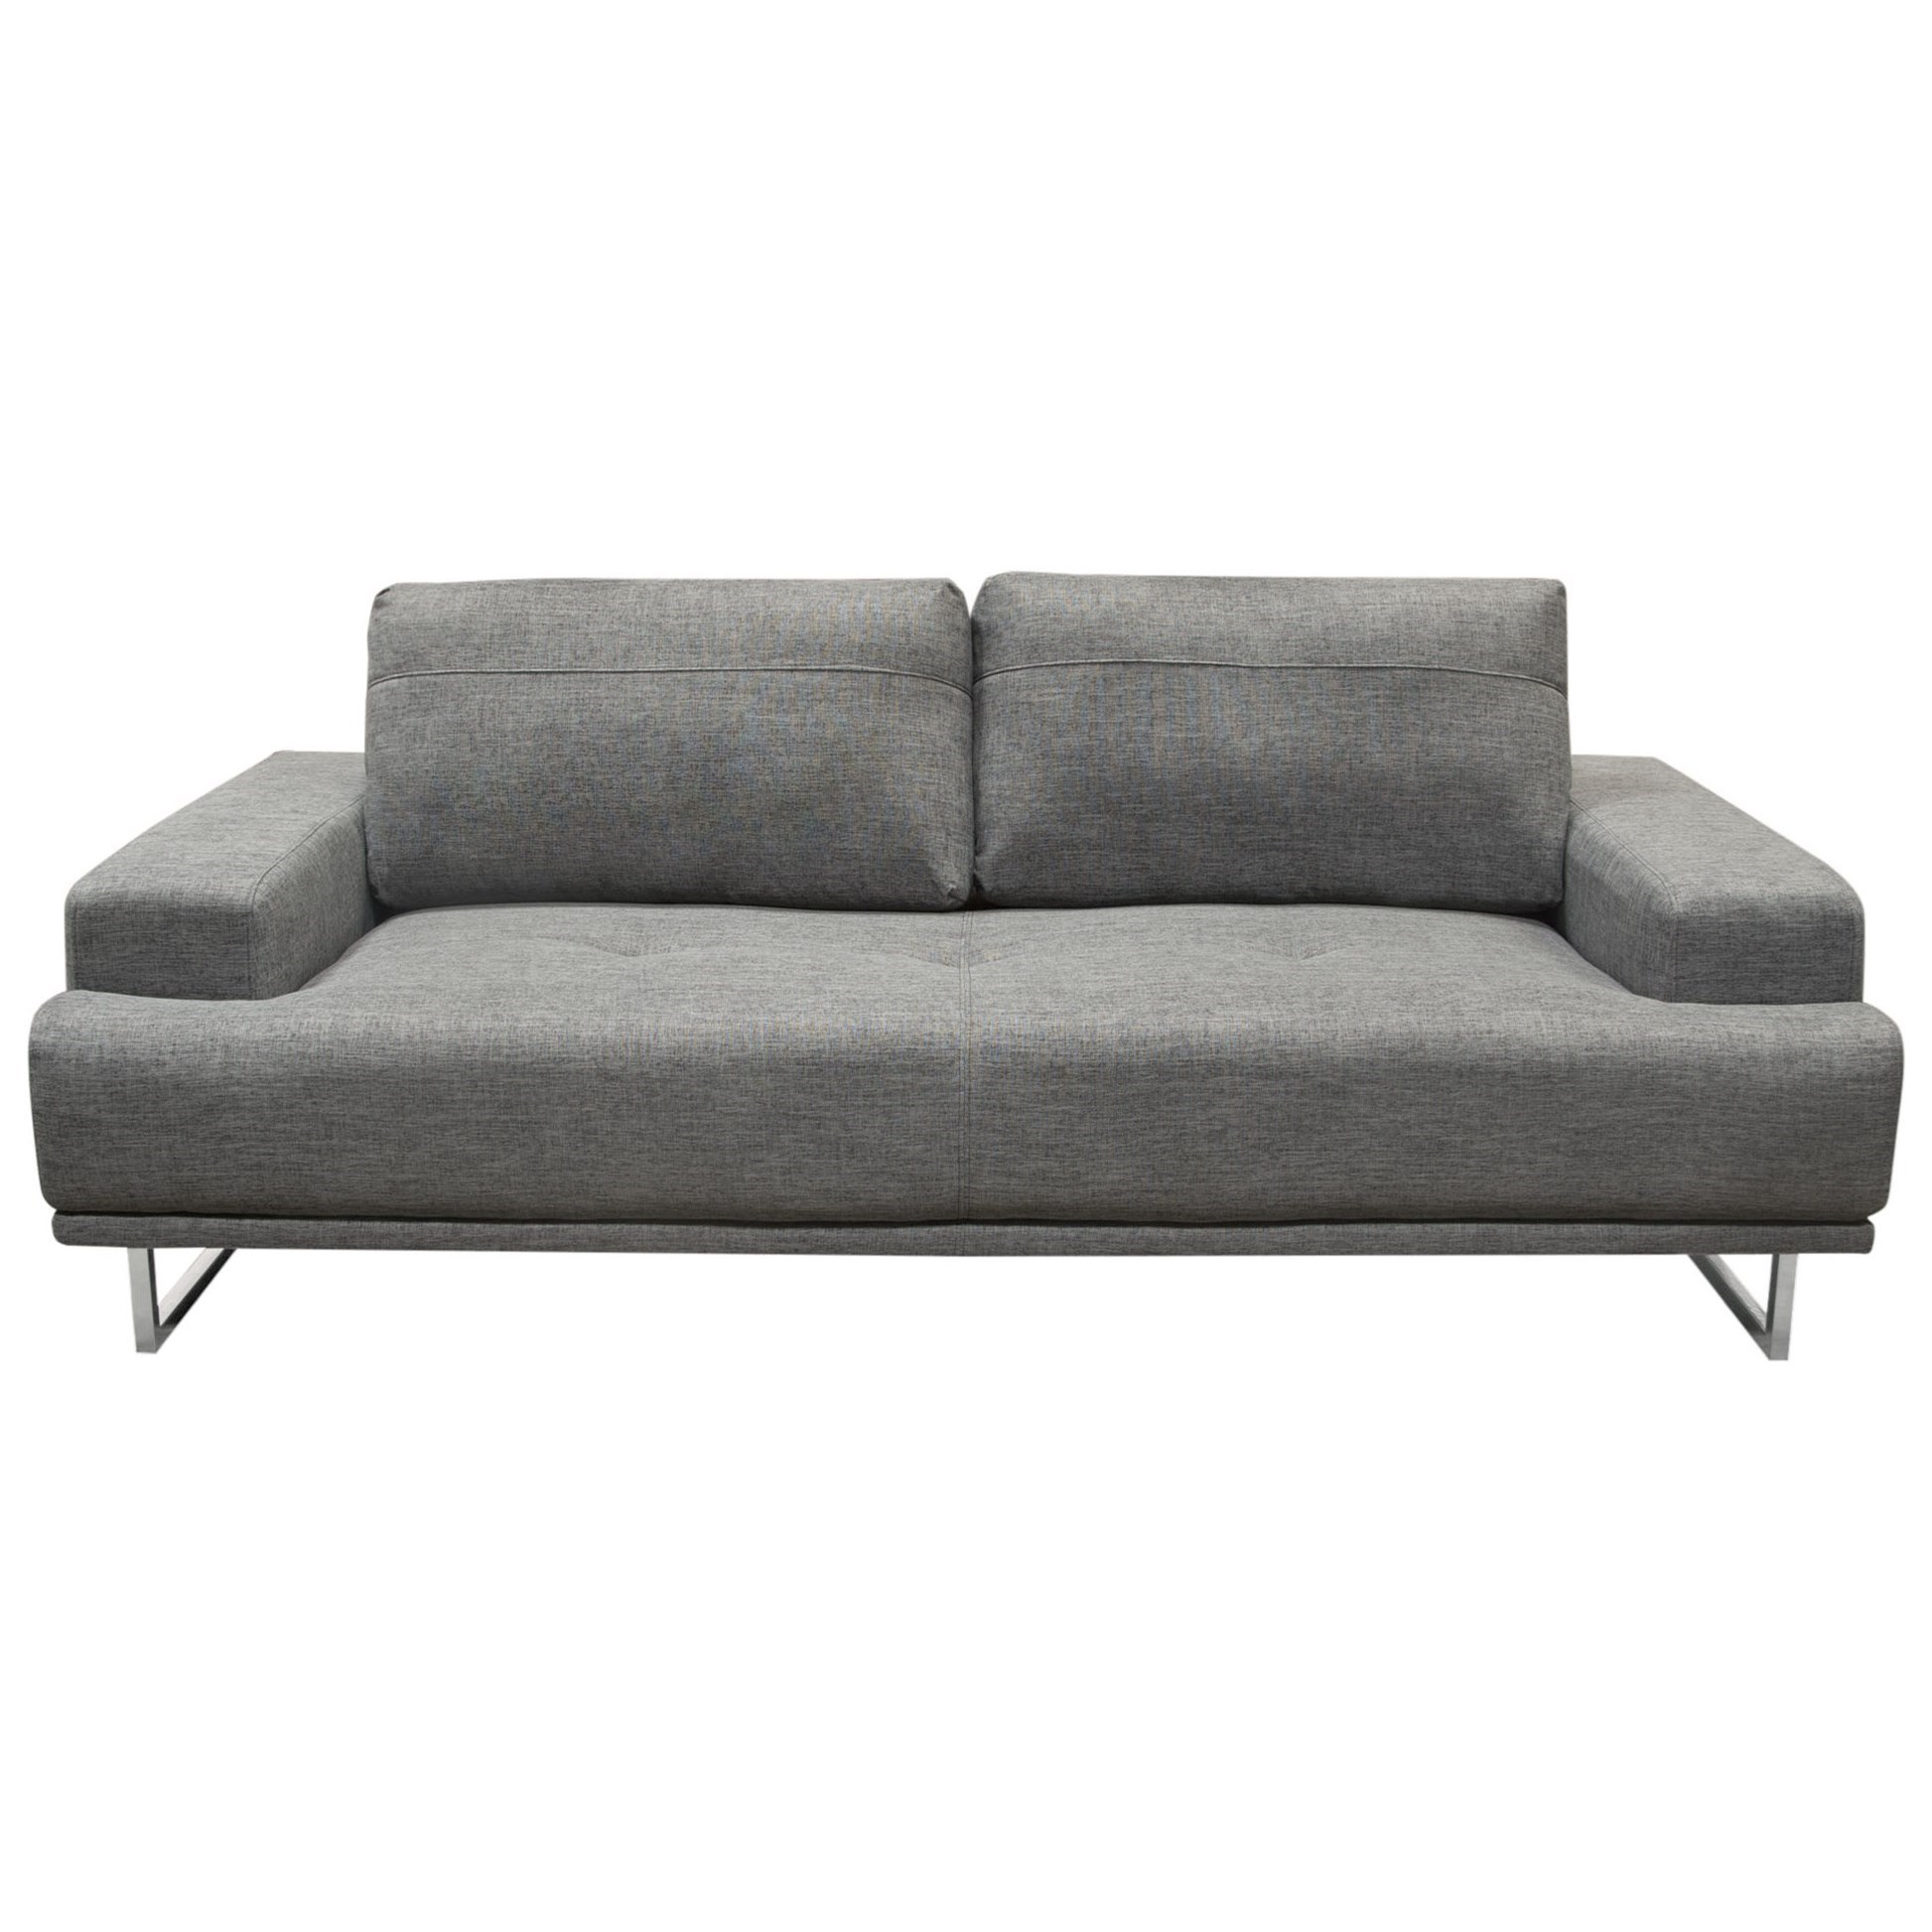 Russo Sofa by Diamond Sofa at Red Knot